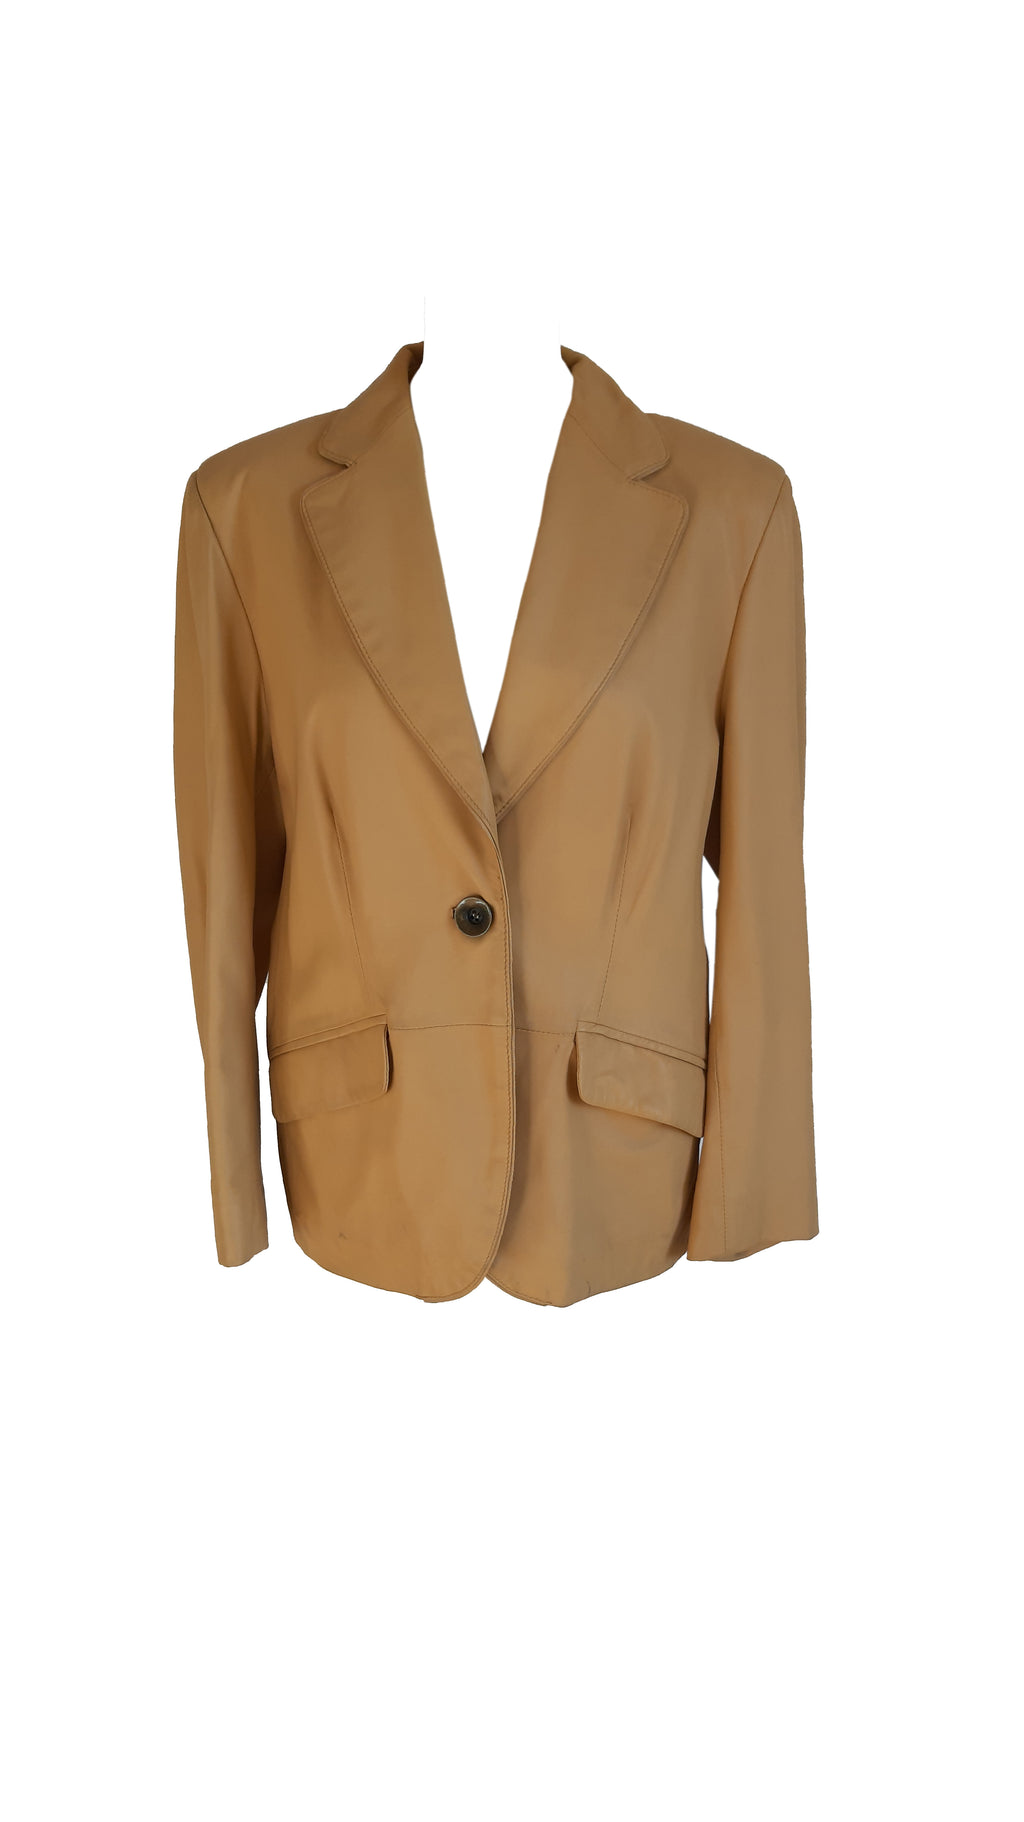 Pied'Poule Real Leather Blazer in Cream Size 44 (EU)